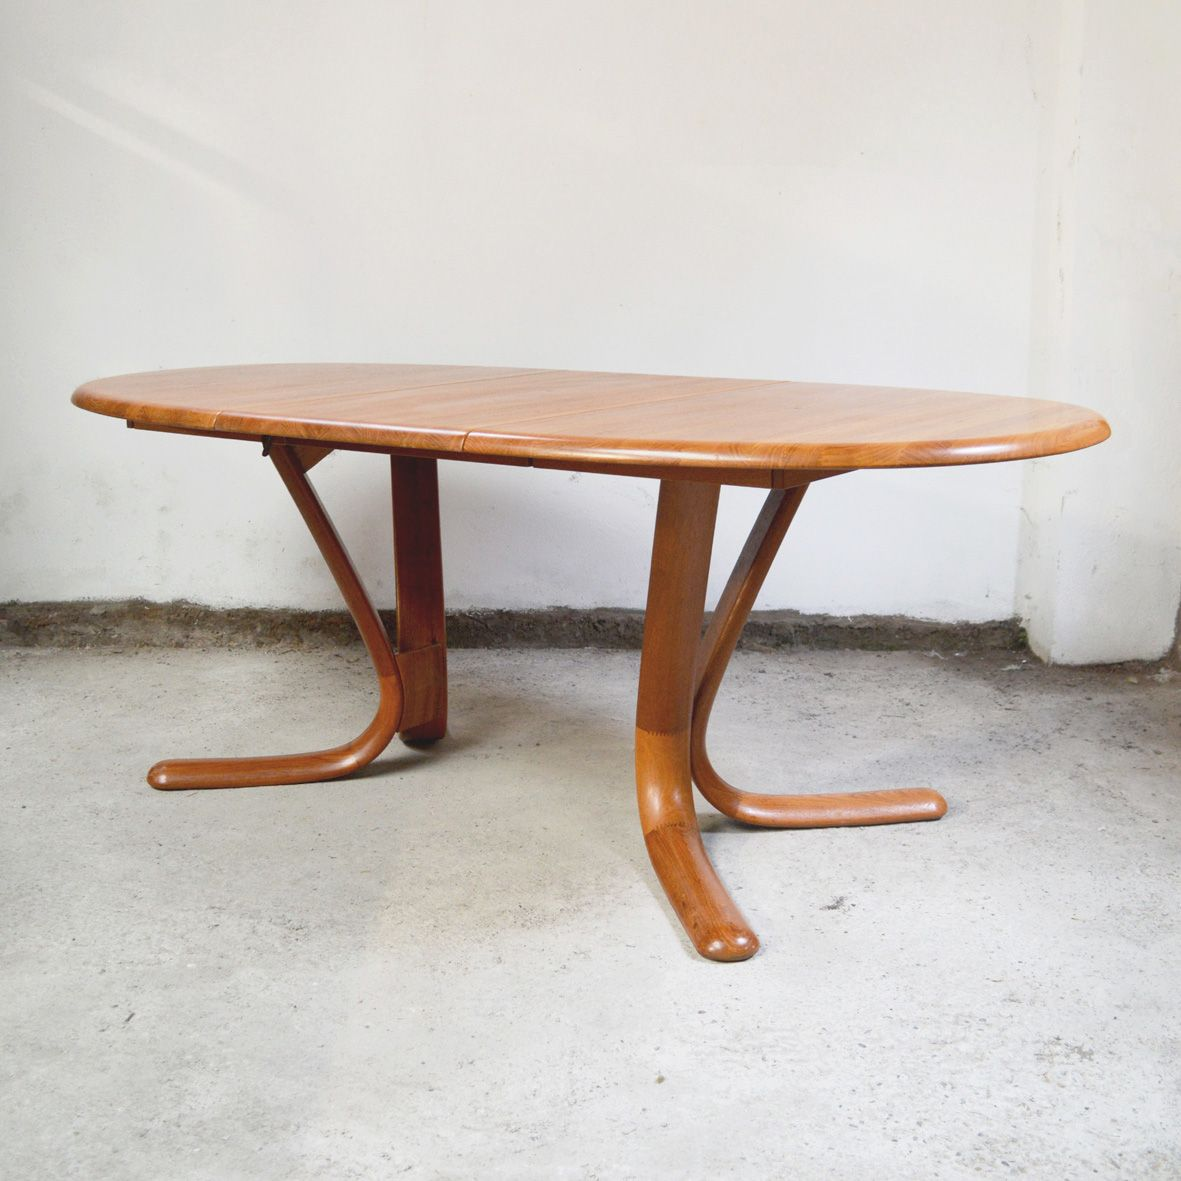 Danish Teak Dining Table with Extension 1980s for sale at  : danish teak dining table with extension 1980s 3 from www.pamono.com size 1181 x 1181 jpeg 358kB